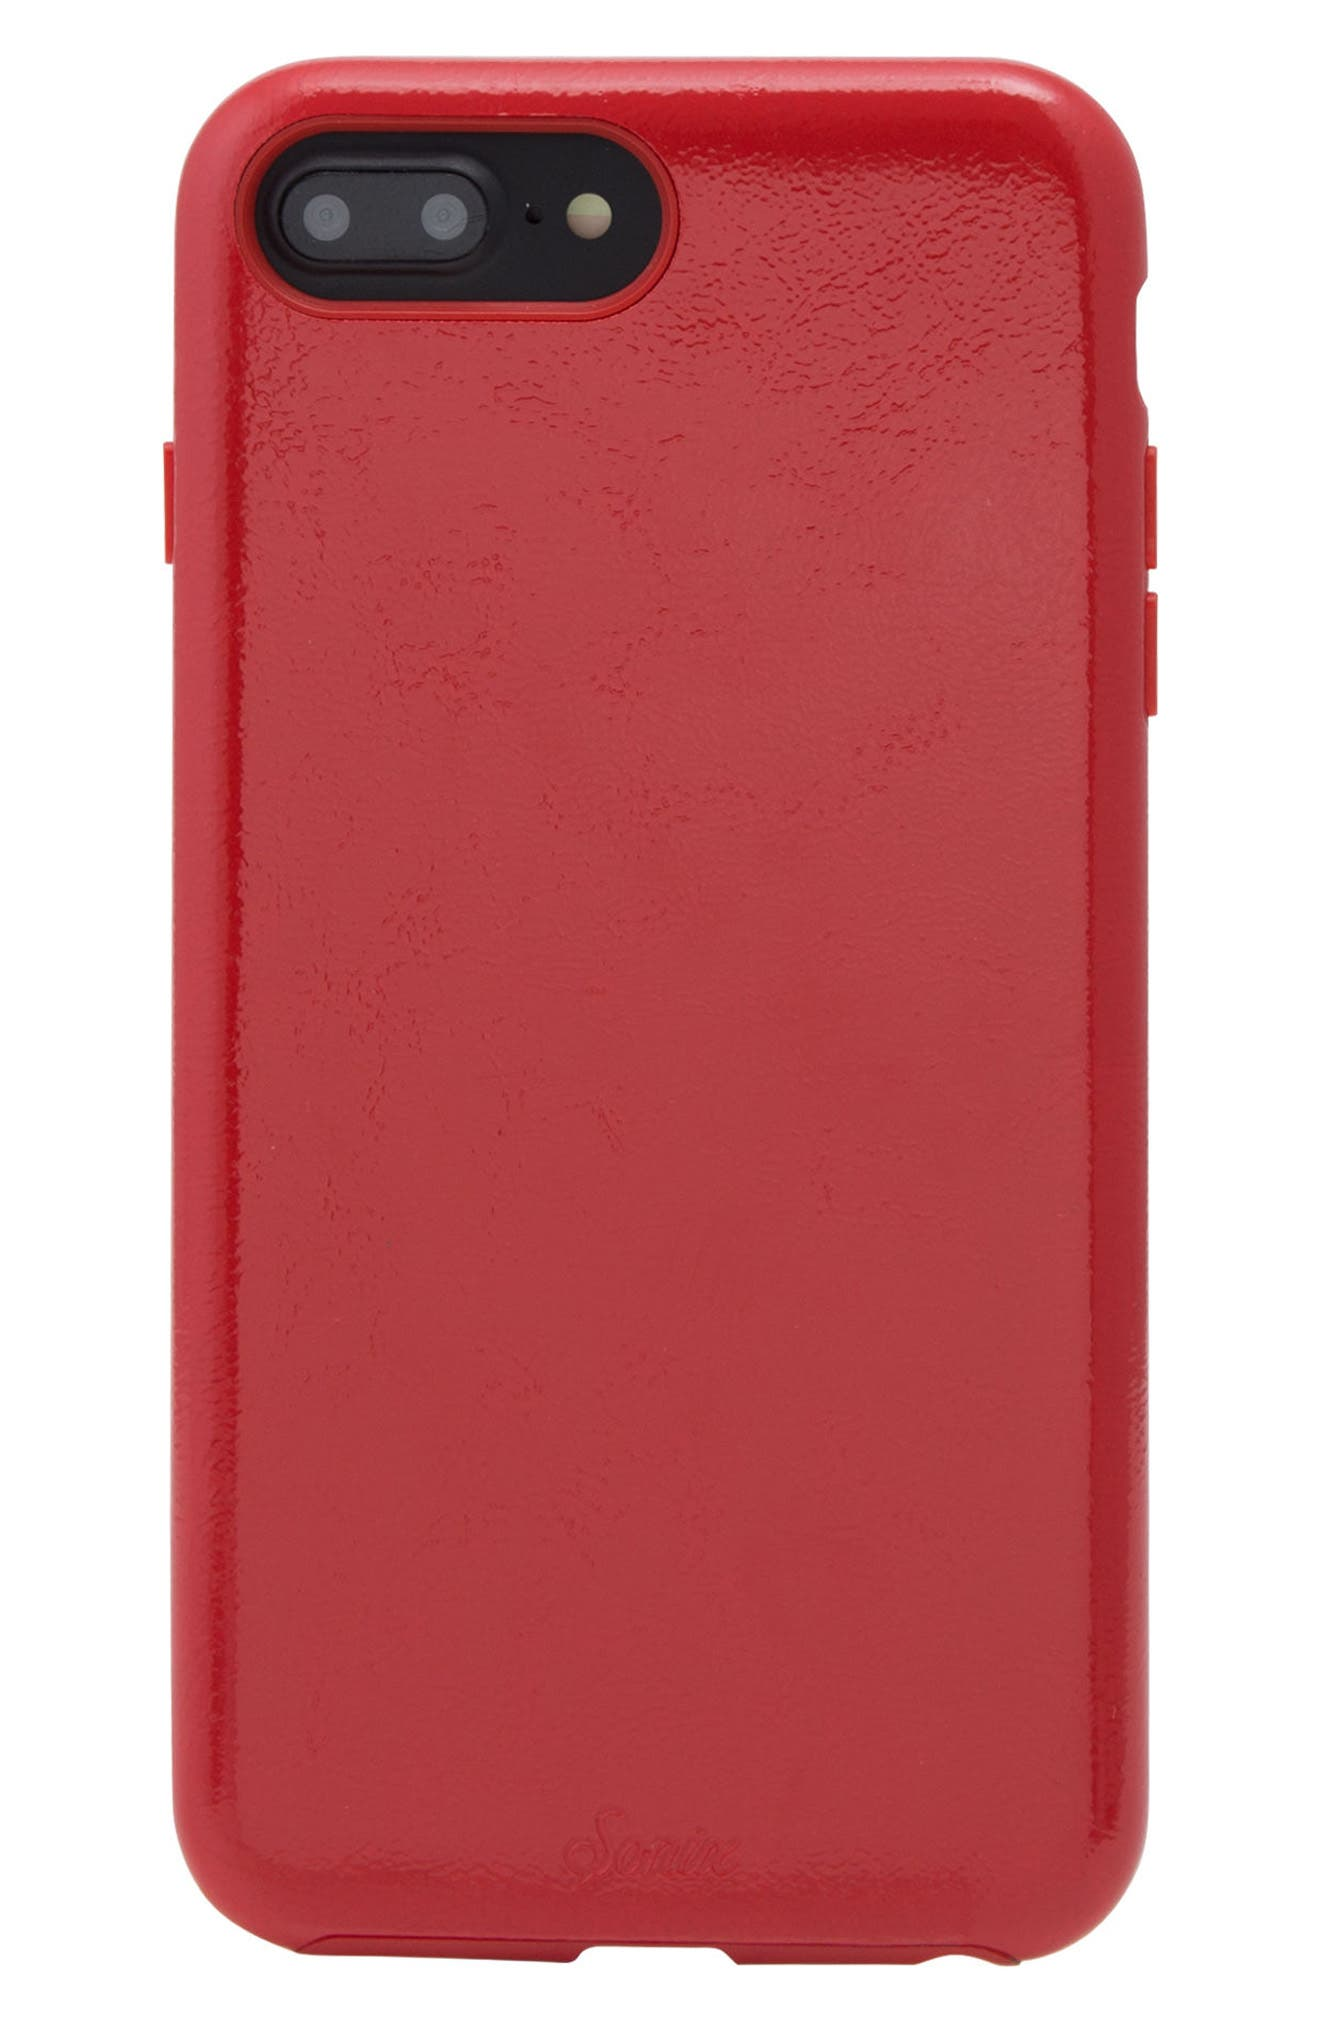 Cherry Faux Leather iPhone 6/6s/7/8 Plus Case,                         Main,                         color, Cherry Red